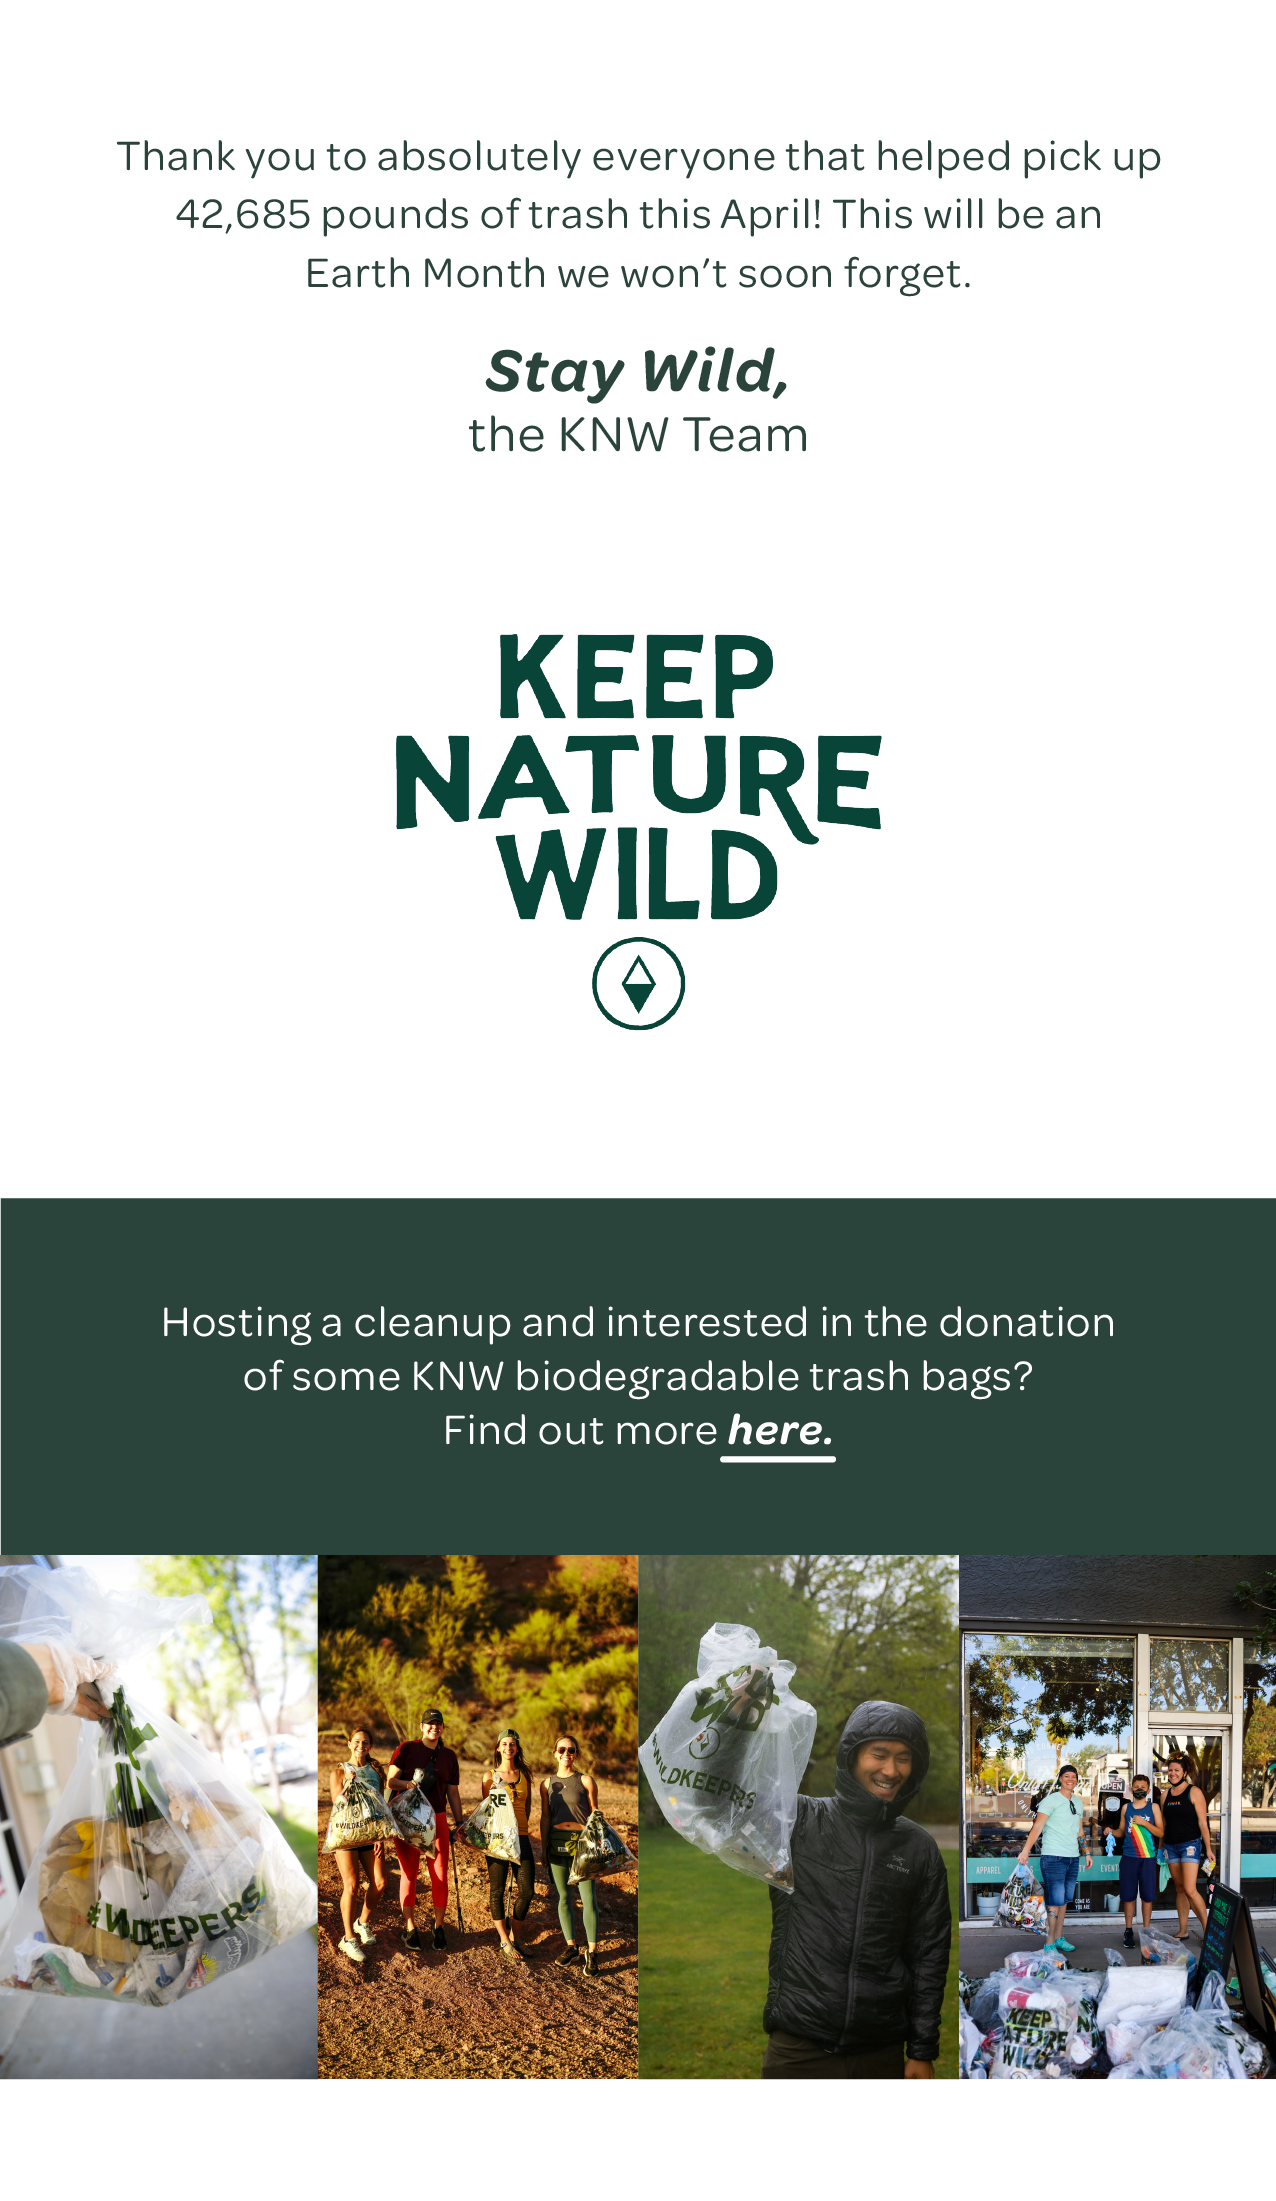 Thank you to absolutely everyone that helped pick up 42,685 pounds of trash this April! This will be an Earth Month we won't soon forget. Stay wild, The KNW Team. Hosting a cleanup and interested in the donation of some KNW biodegradable trash bags? Find out more here.